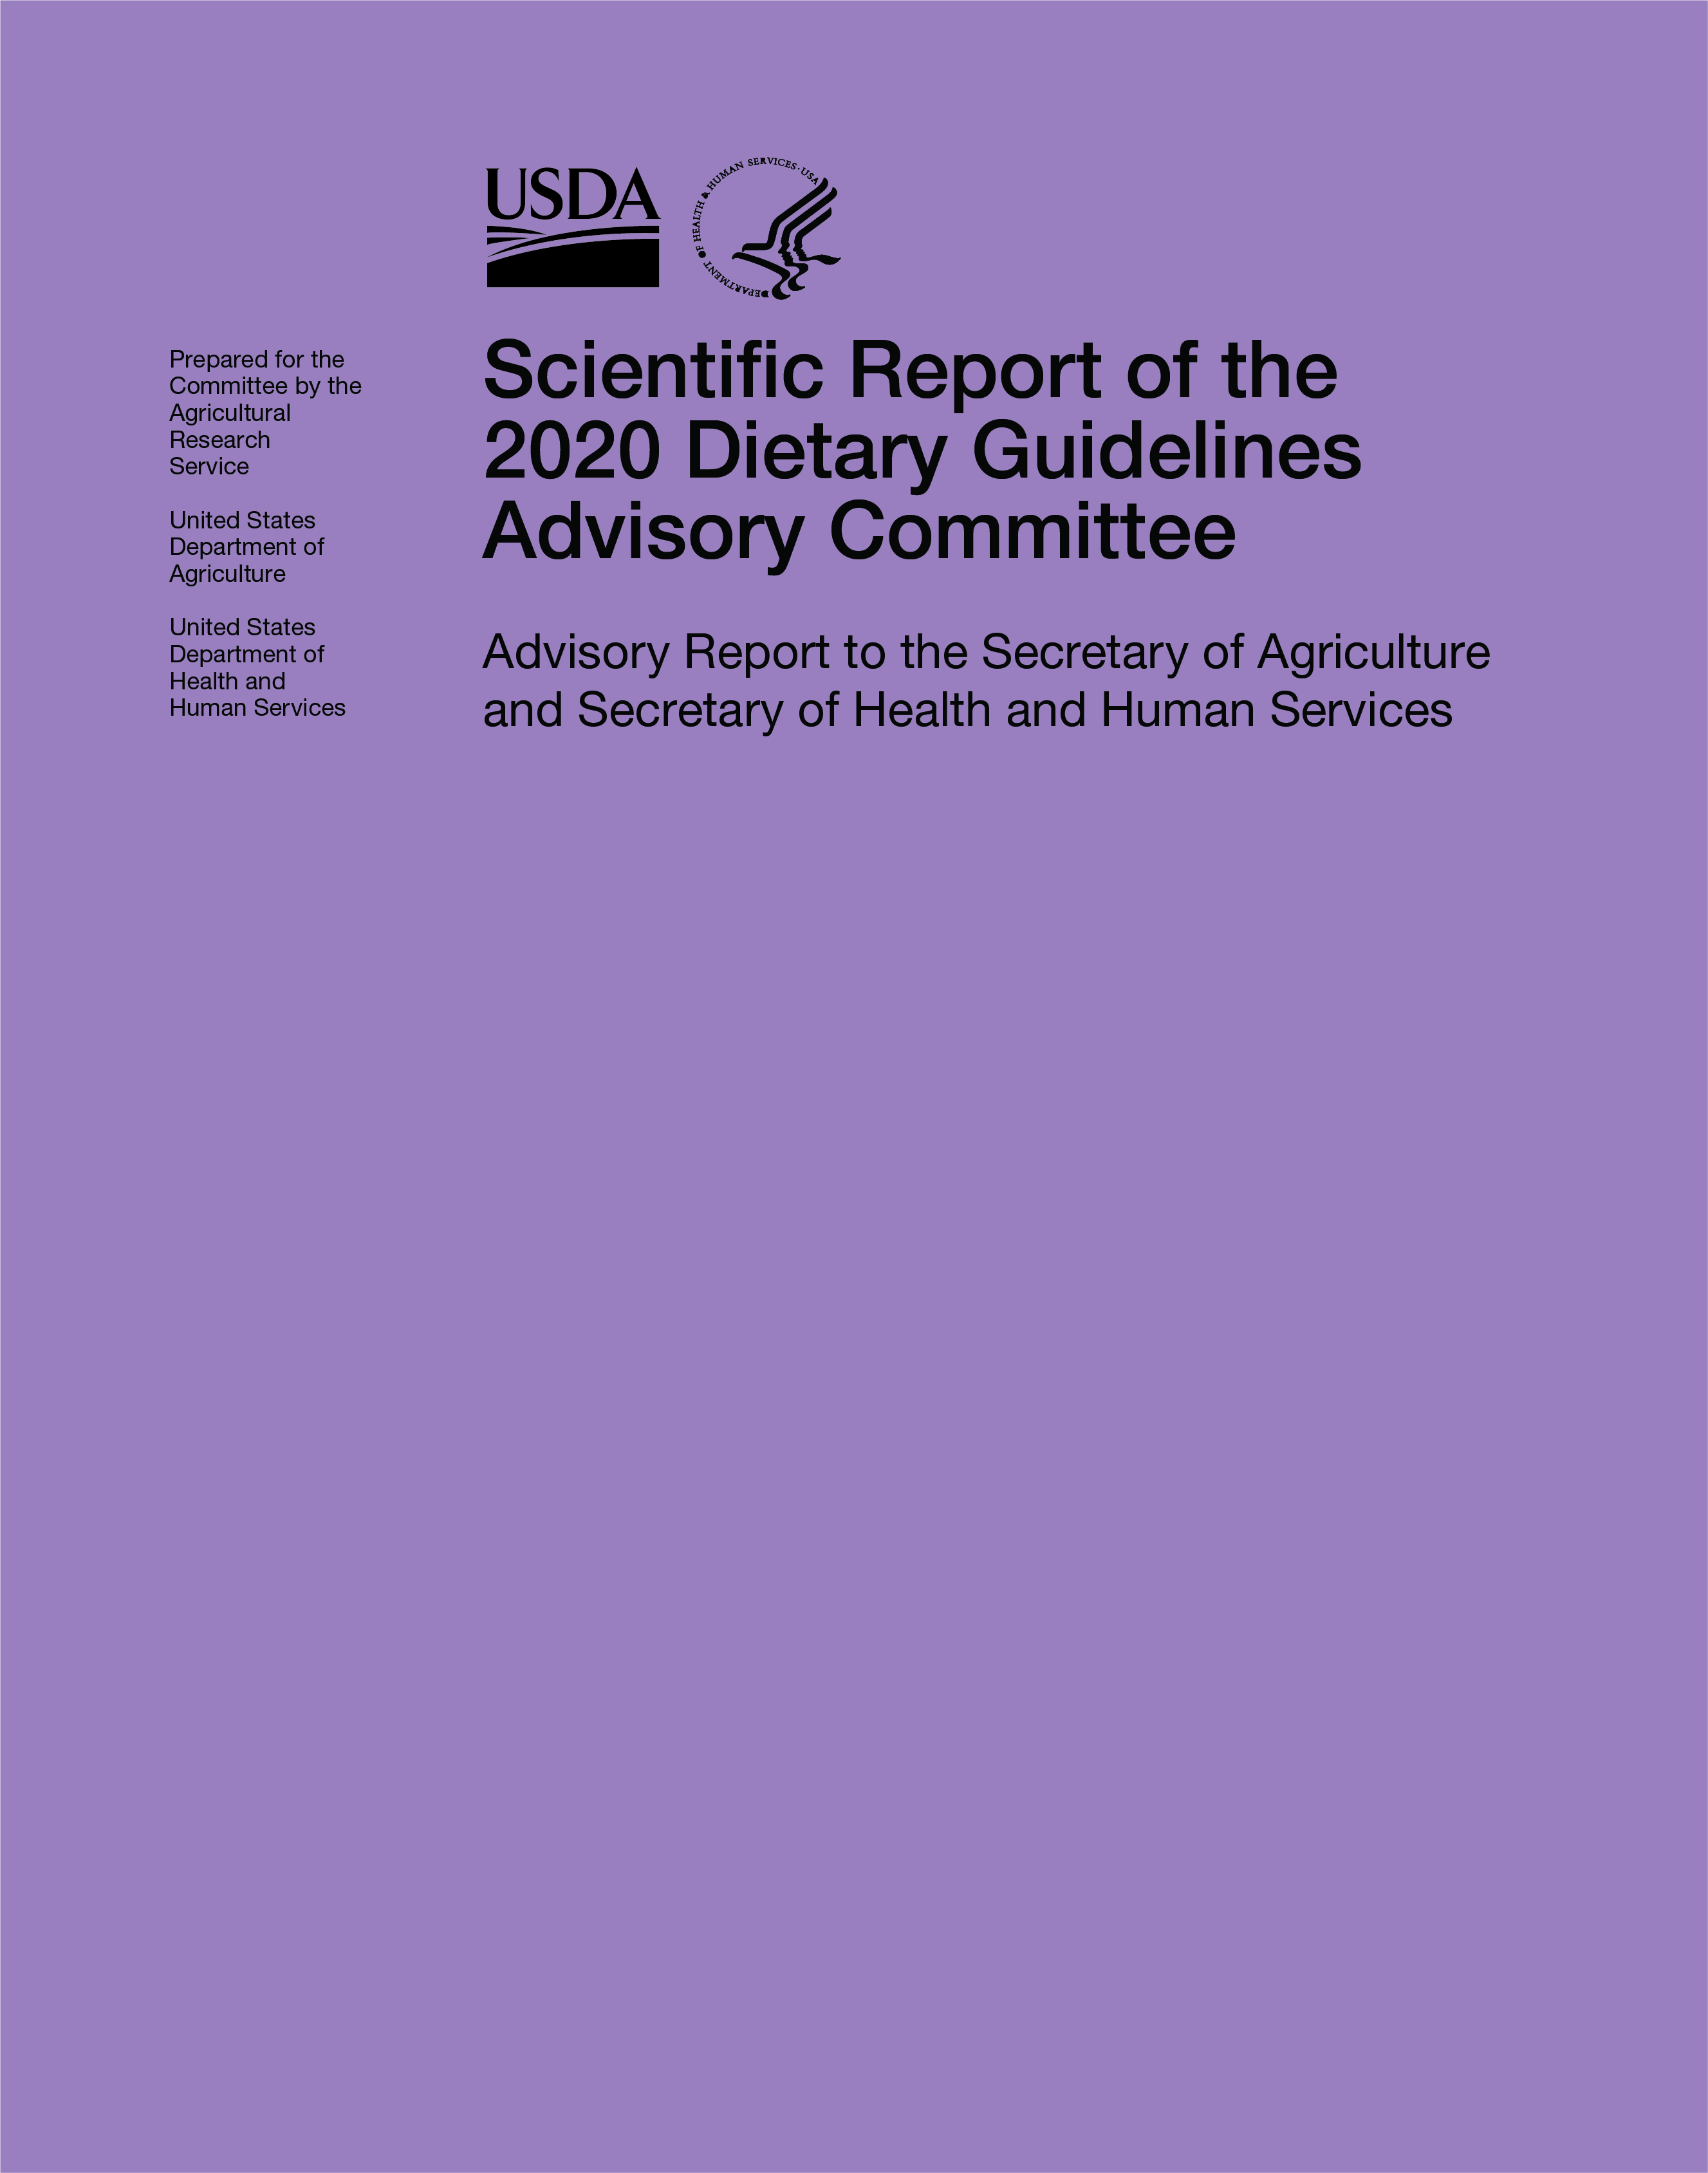 Scientific Report of the 2020 Dietary Guidelines Advisory Committee